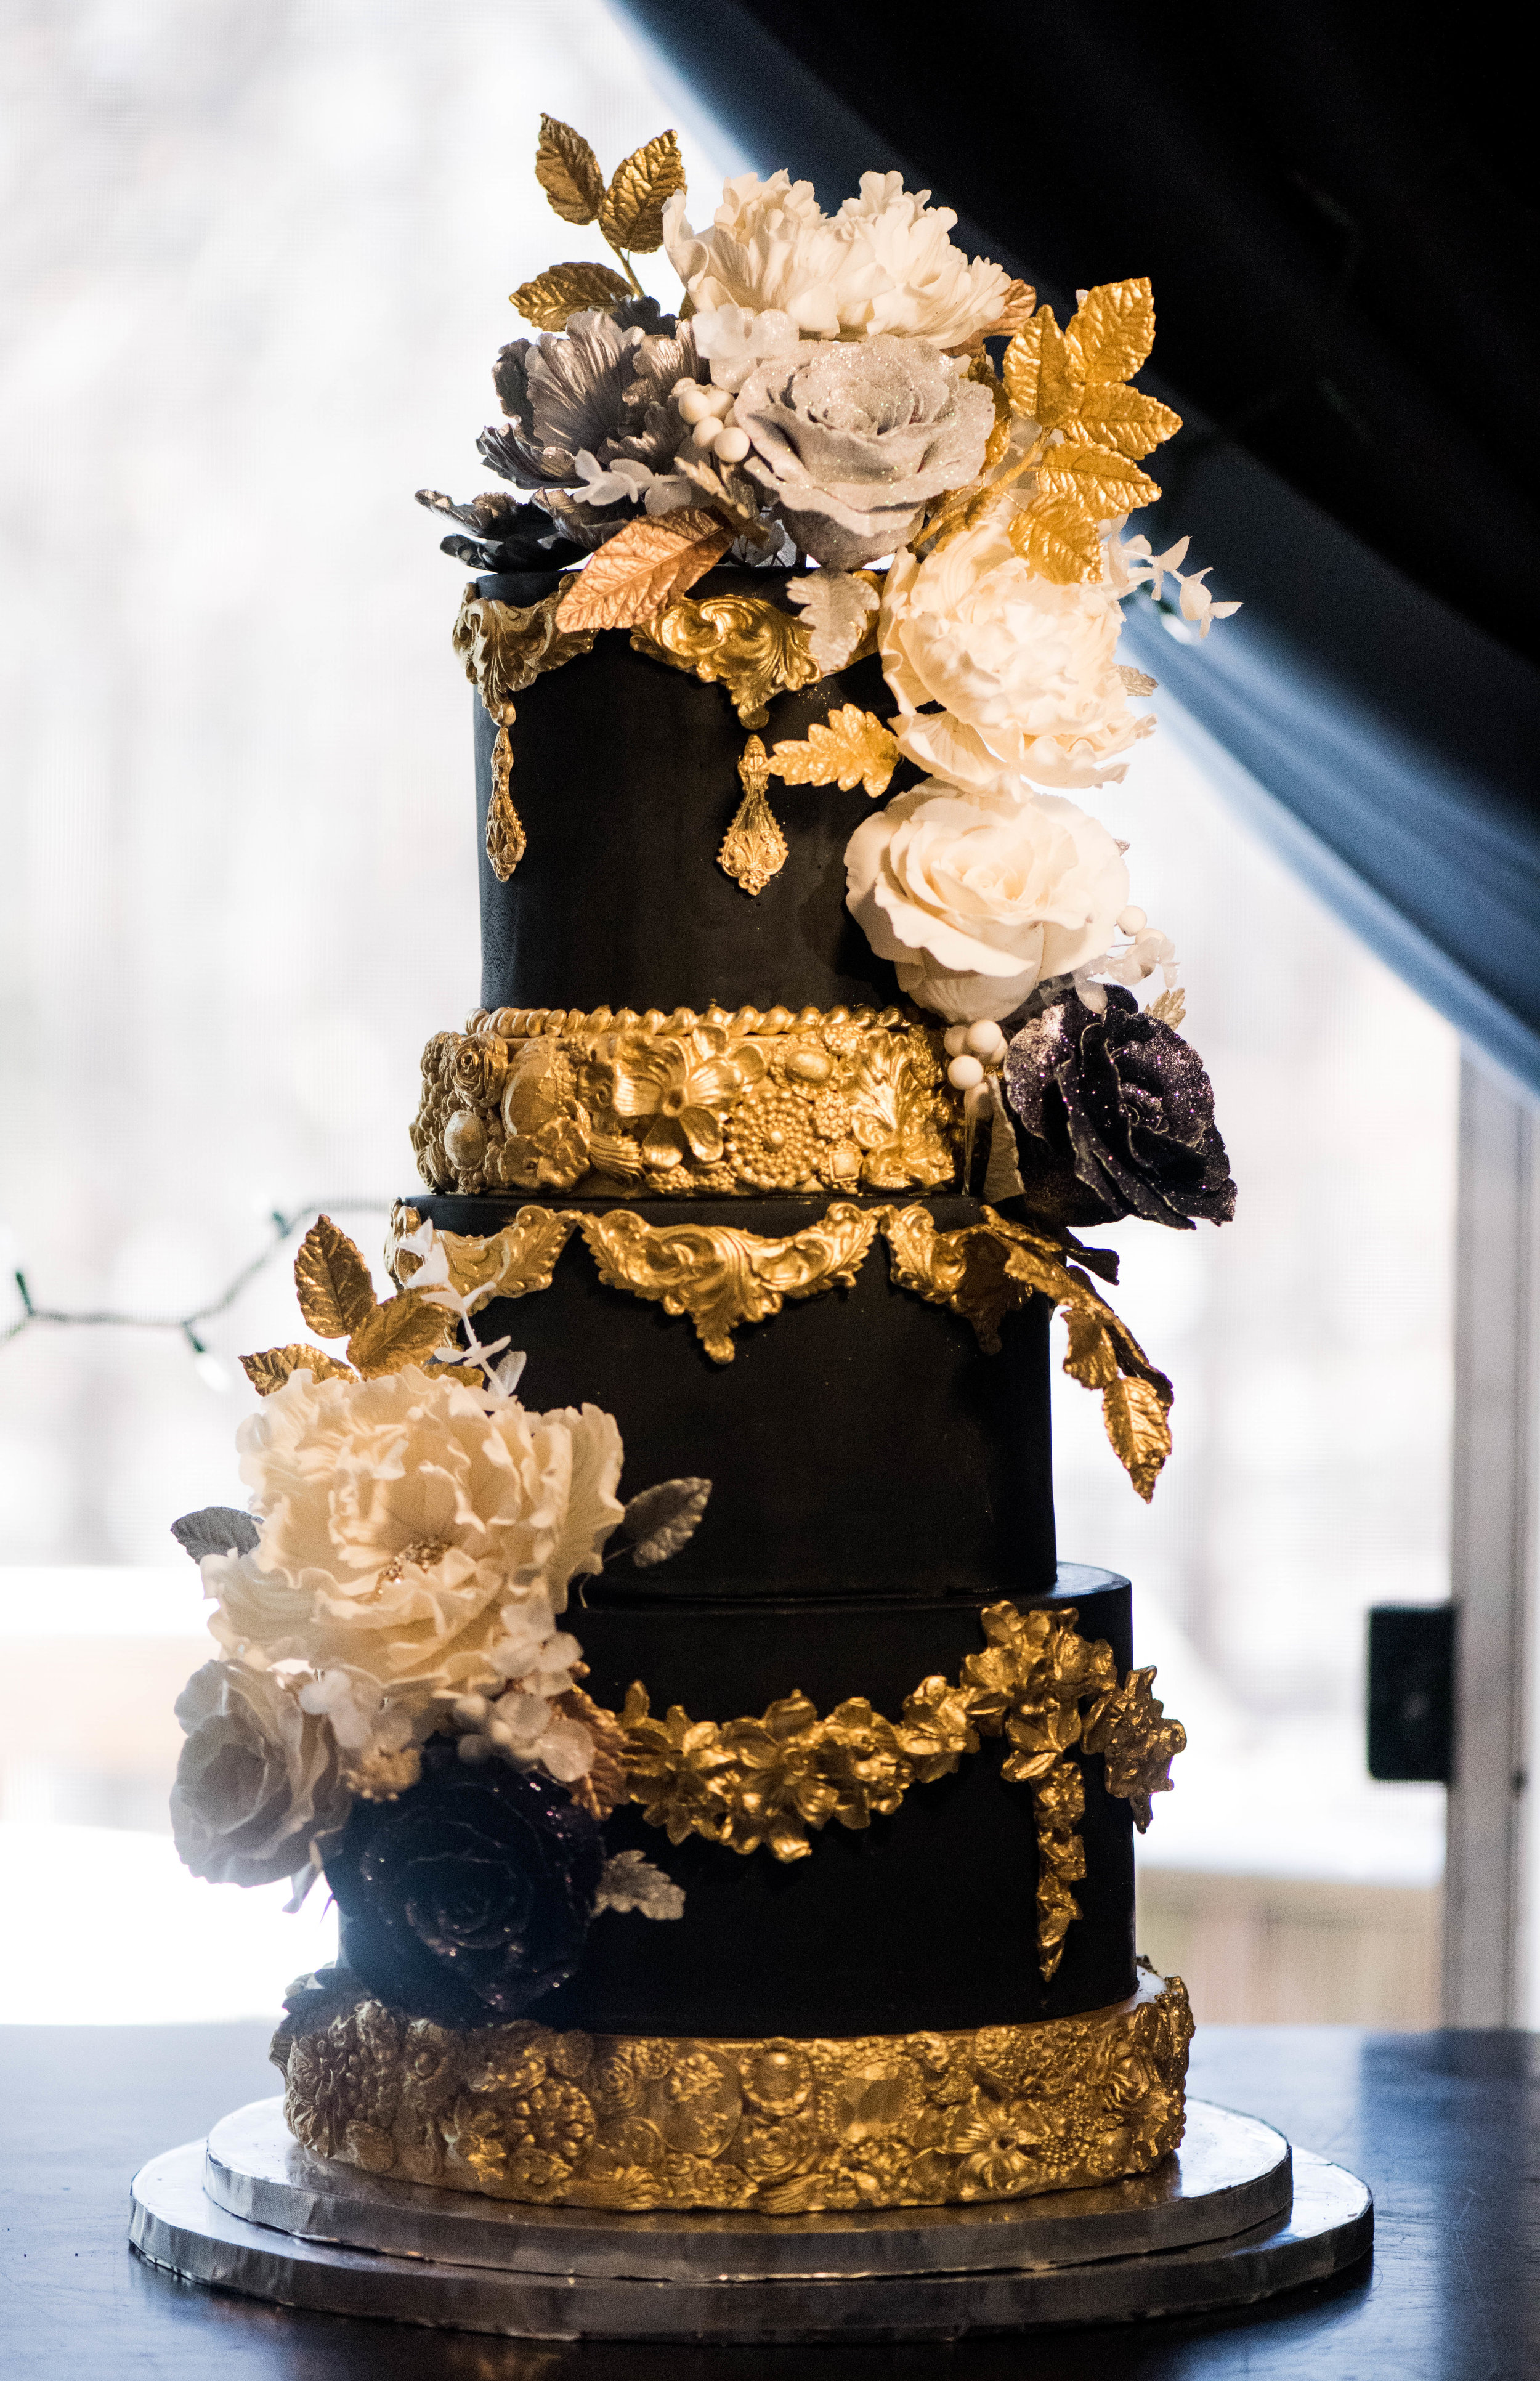 Ebony Elegance - This all black cake was paired with gold bas-relief effect tiers and ornate gold details. White, silver, and black sugar flowers add a romantic touch.